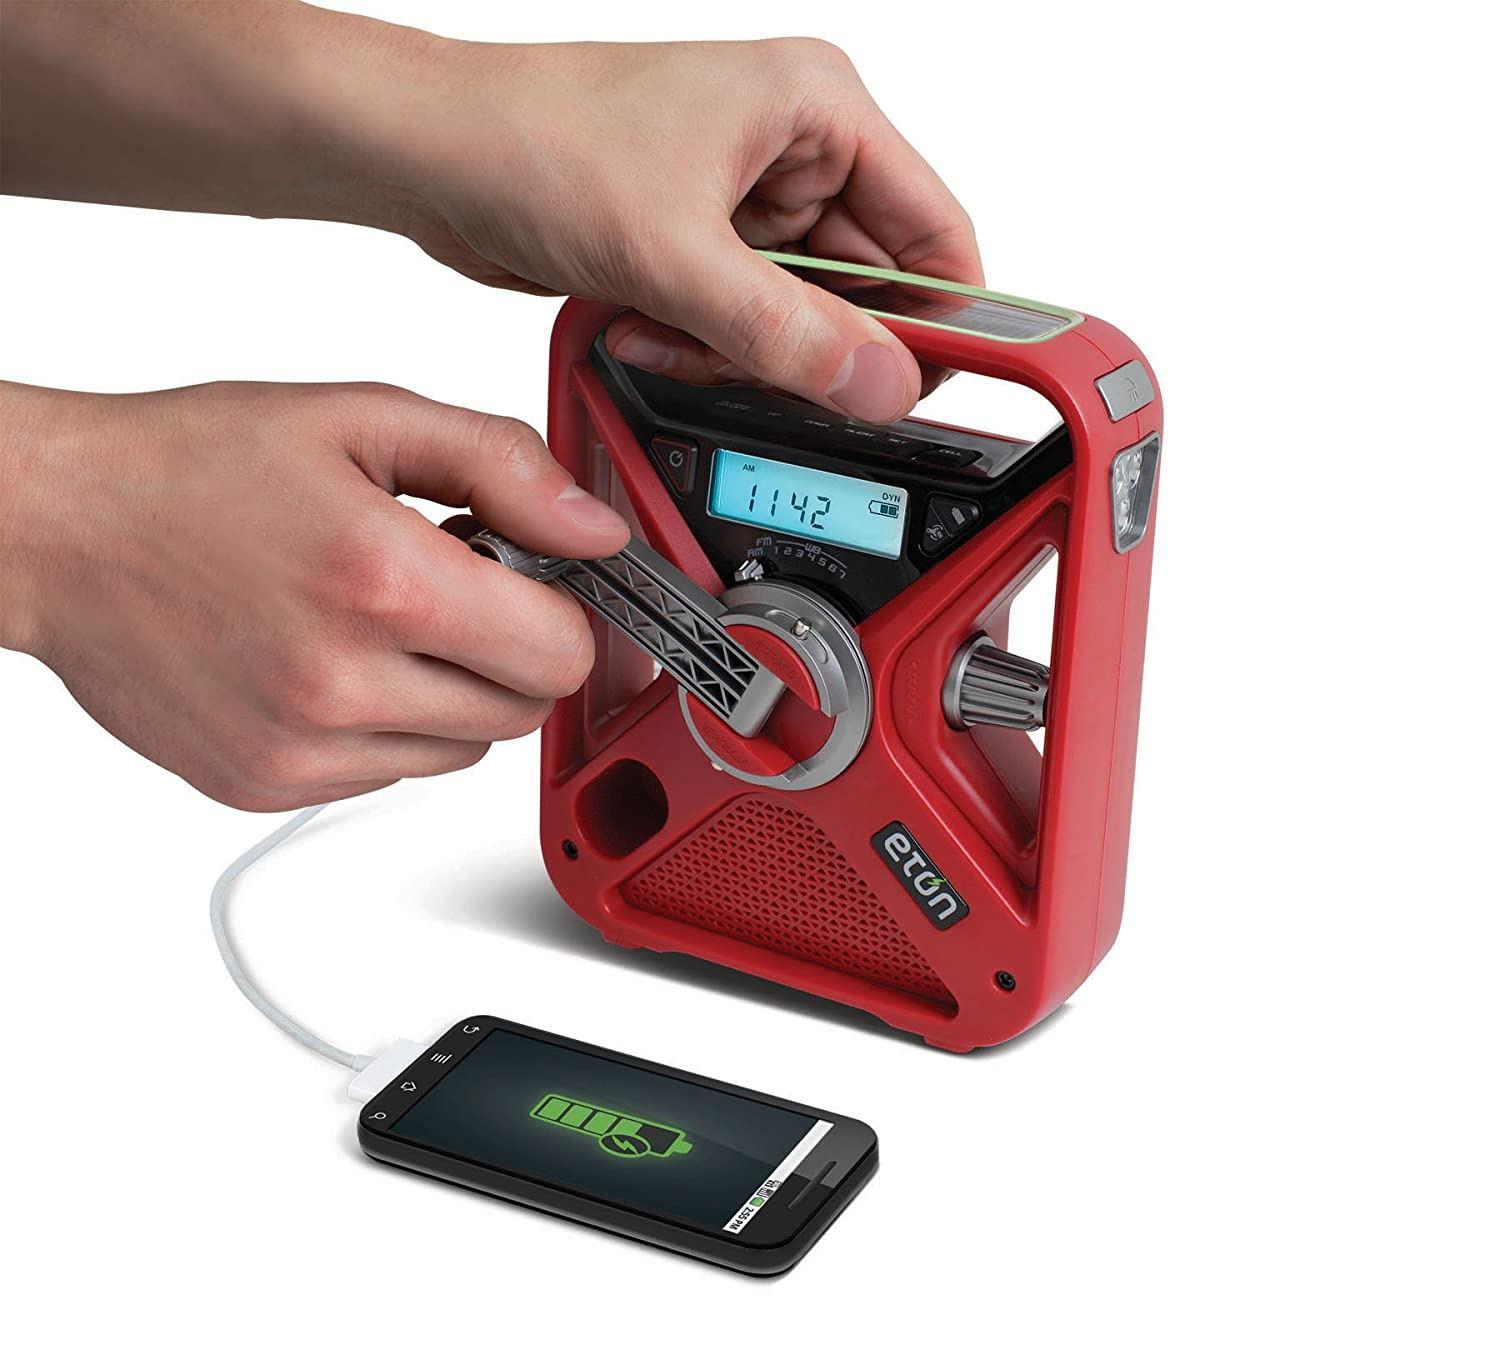 Hand Crank Smartphone Charger made our list of Tent Camping Terminology And RV Terms You Need To Know and the CampingForFoodies tent camping hacks campsite dwellers must be aware of for a great camp trip!